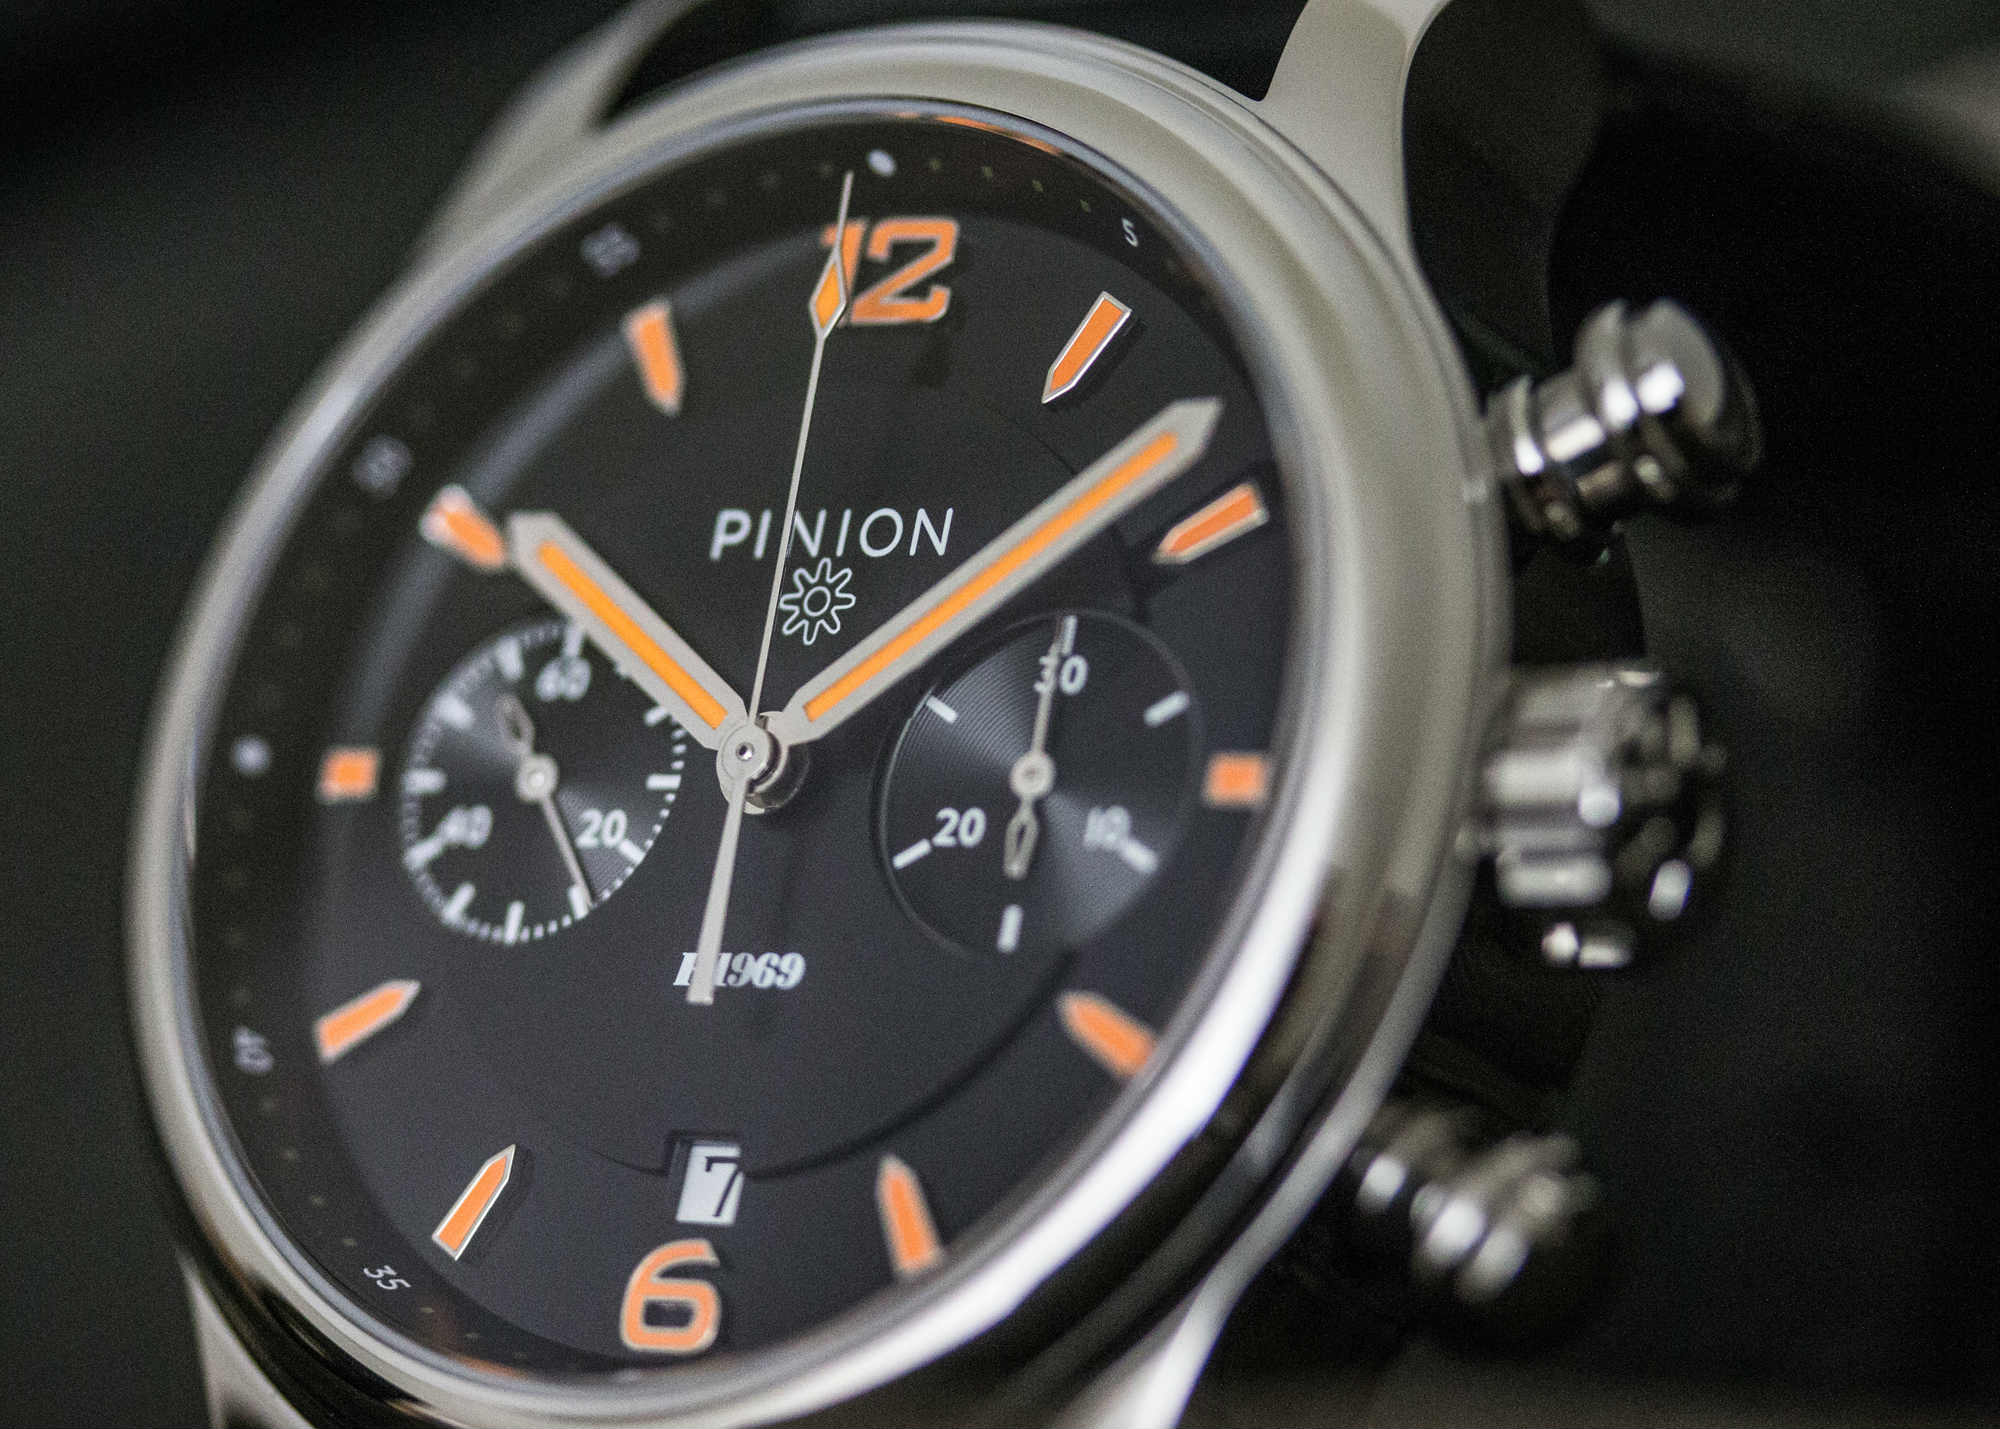 how piers young watch created berry designer pinion features a brand british revival suave watches forming